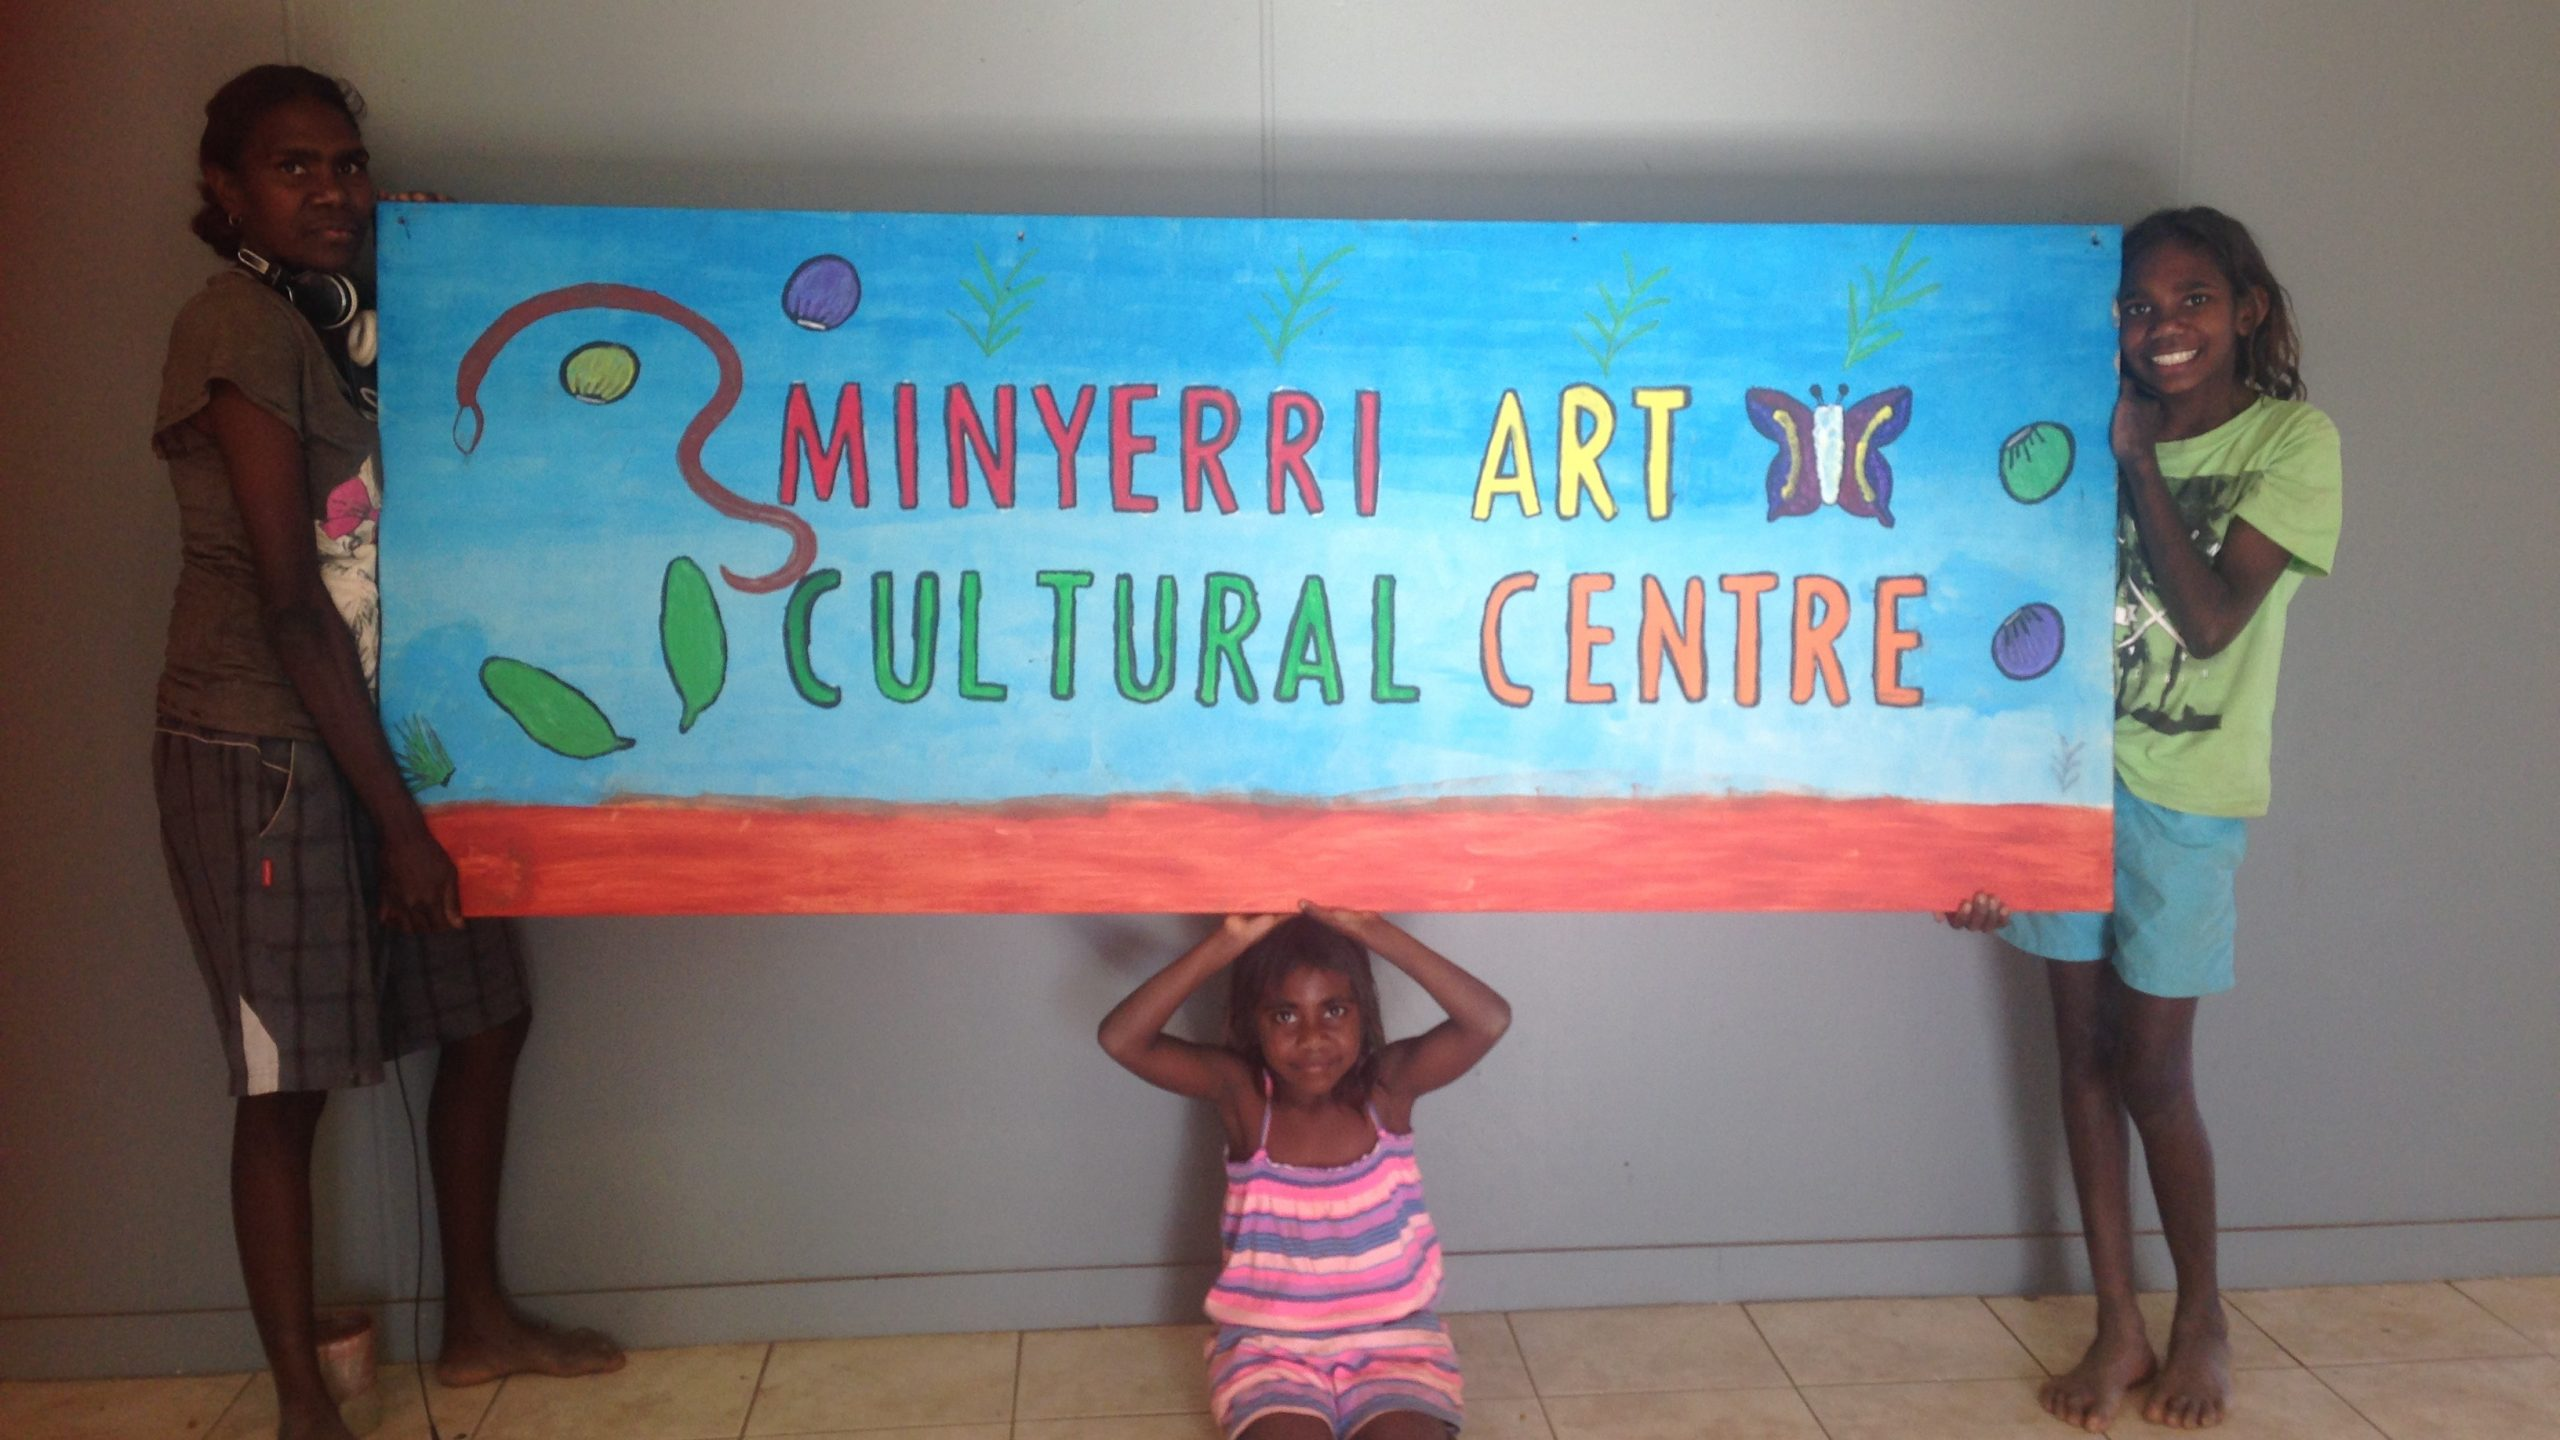 Minyerri; what a community arts centre is for